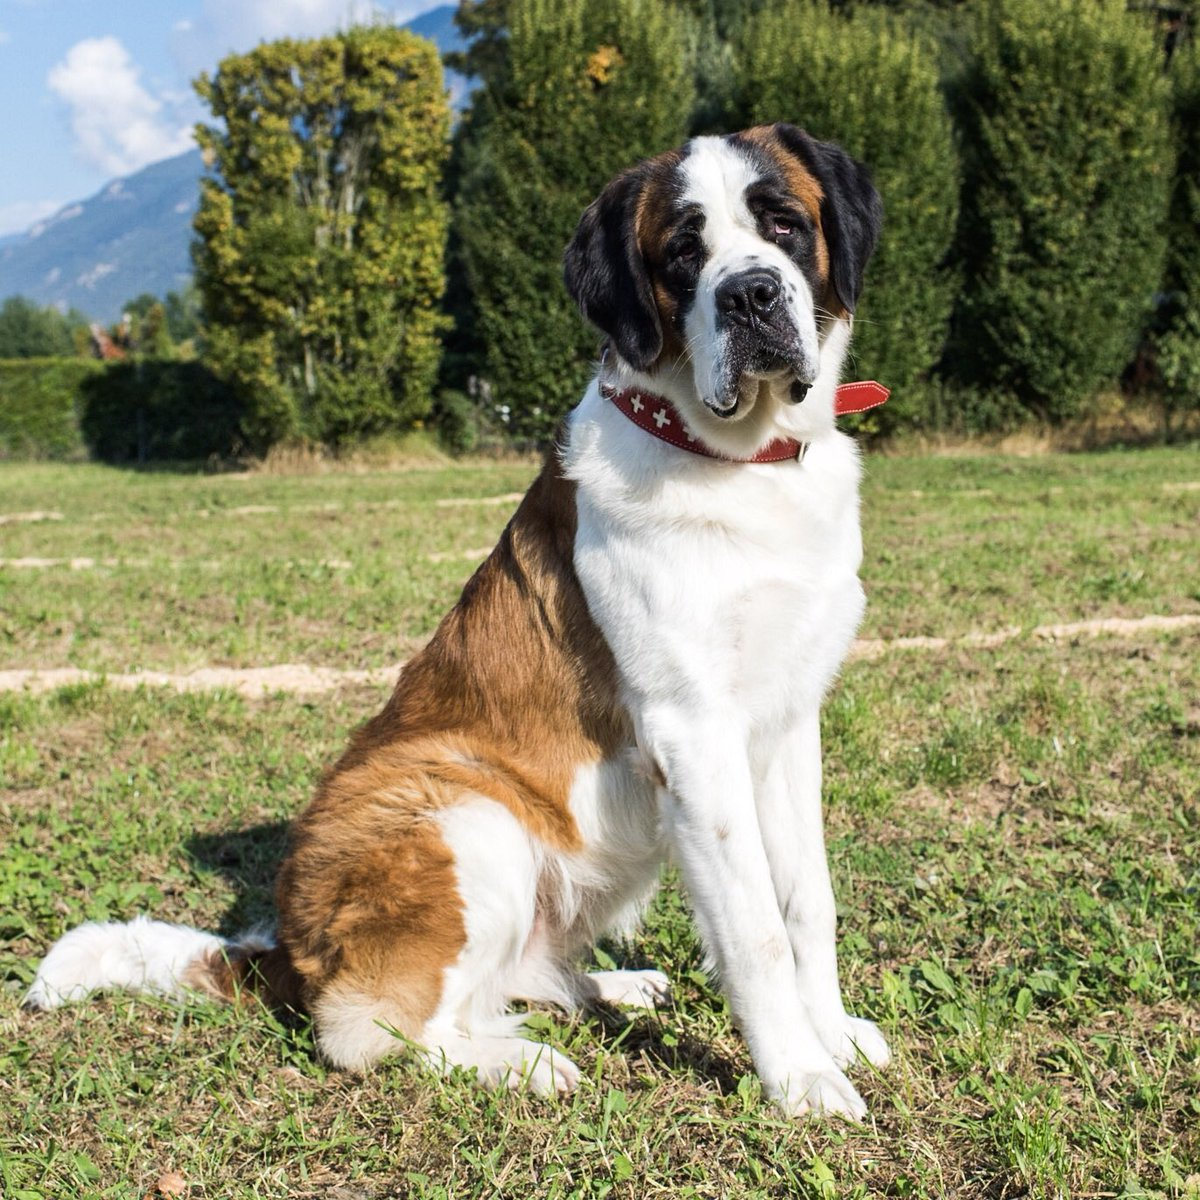 Dog Breeds: Which Dogs Like Cold Weather?